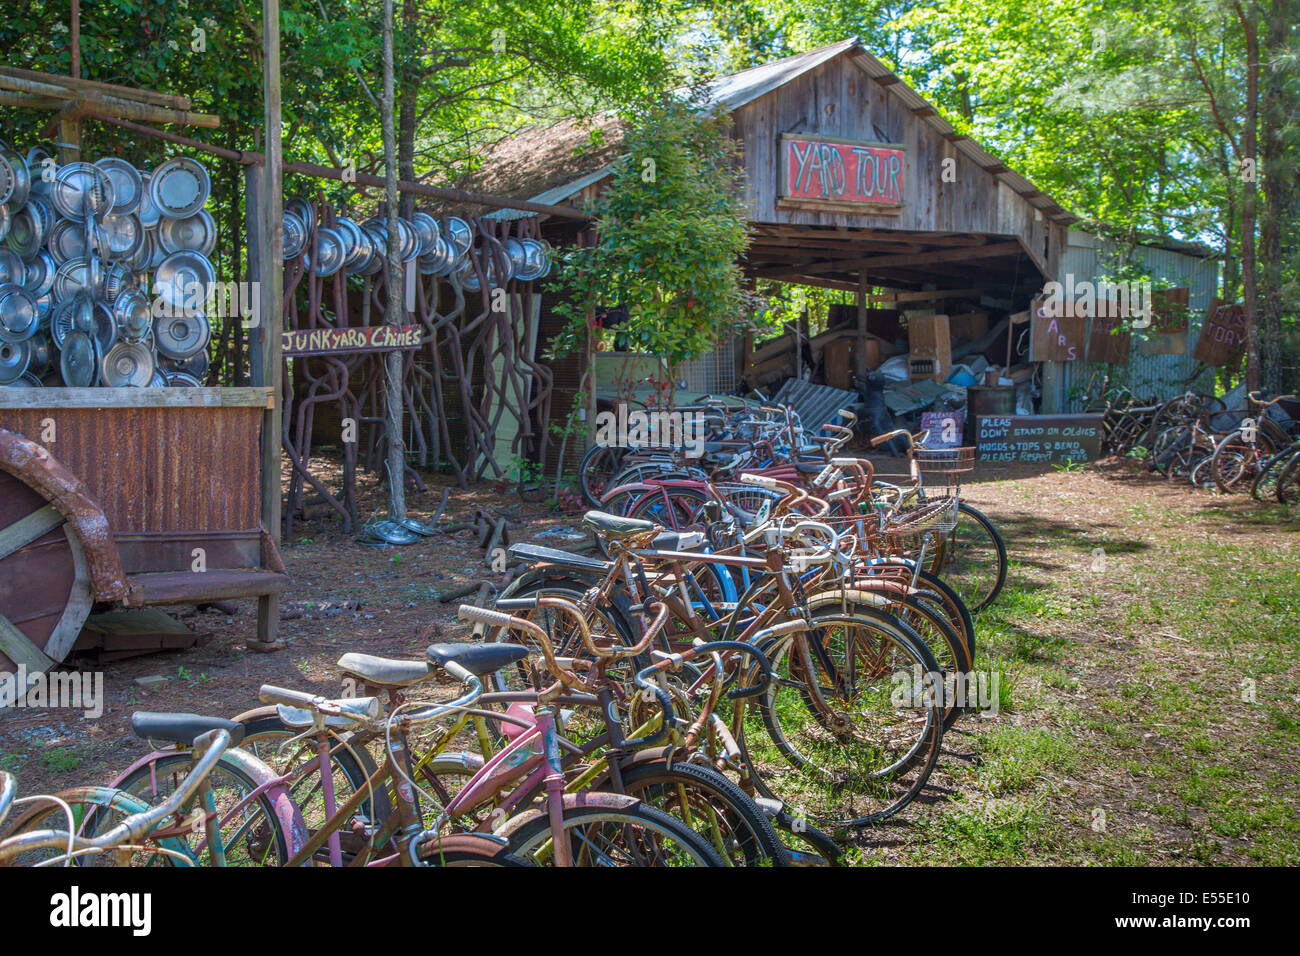 Old rusted  bicycles at Old Car City in White Georgia - Stock Image